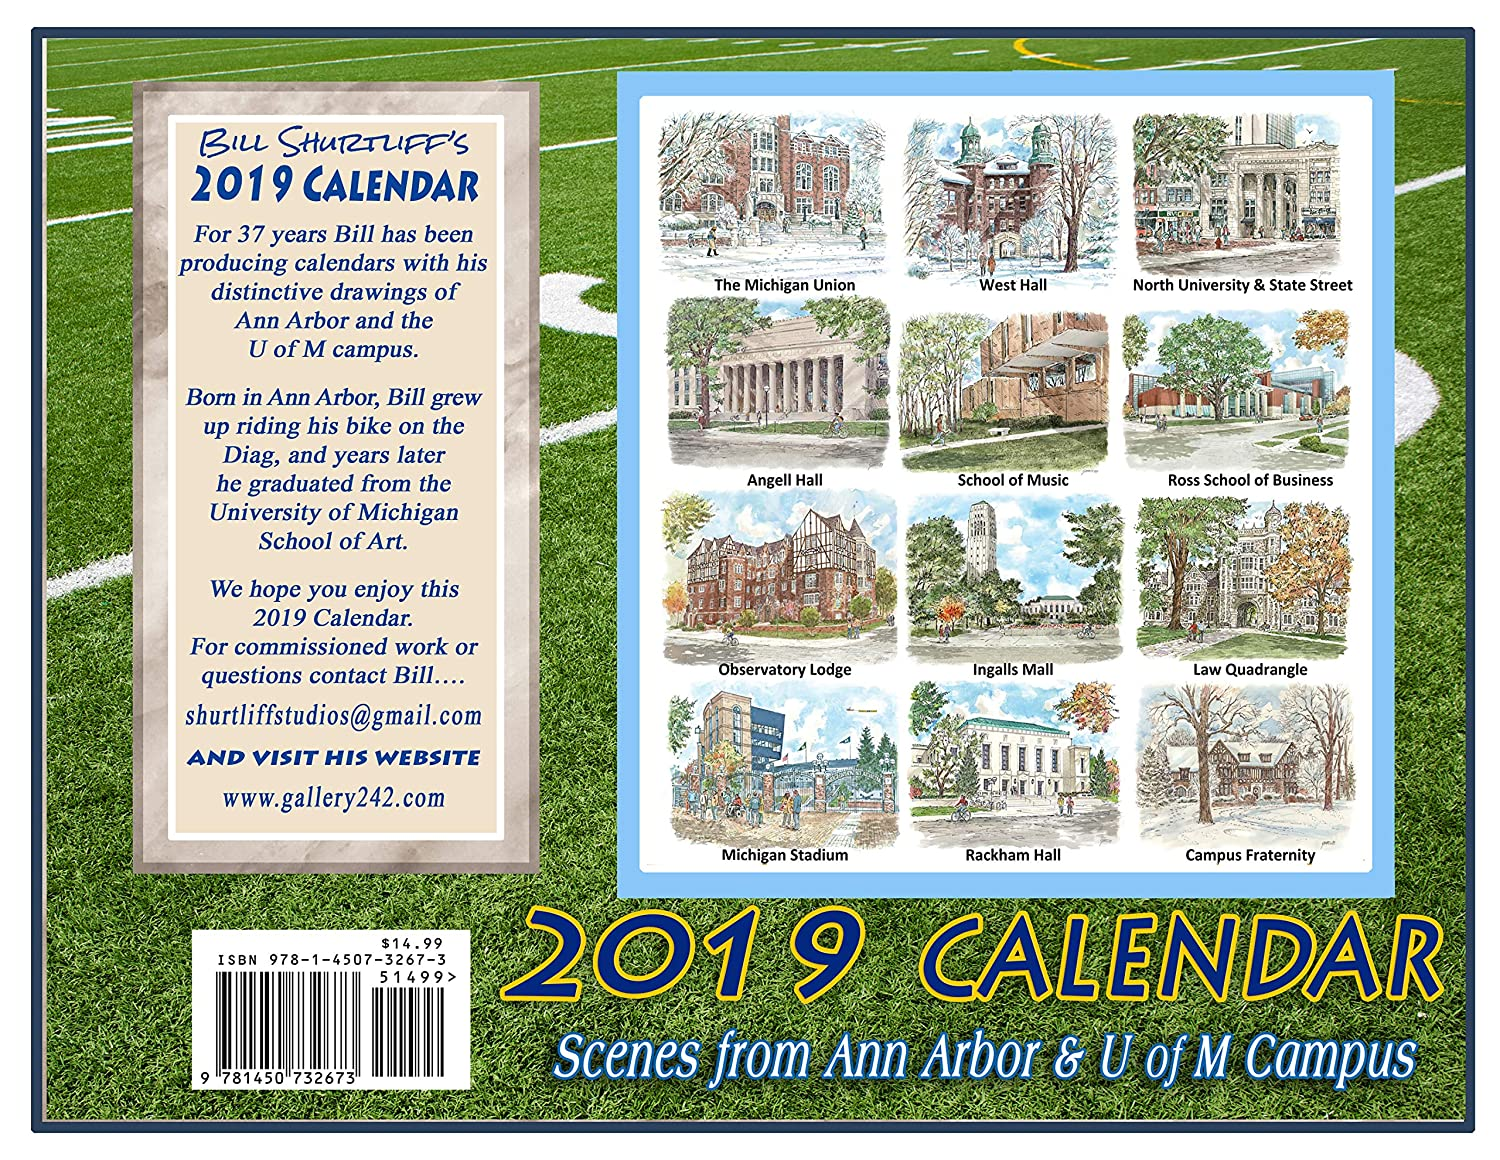 U Of M Calendar 2019 Amazon.: University of Michigan 2019 Calendar : Office Products